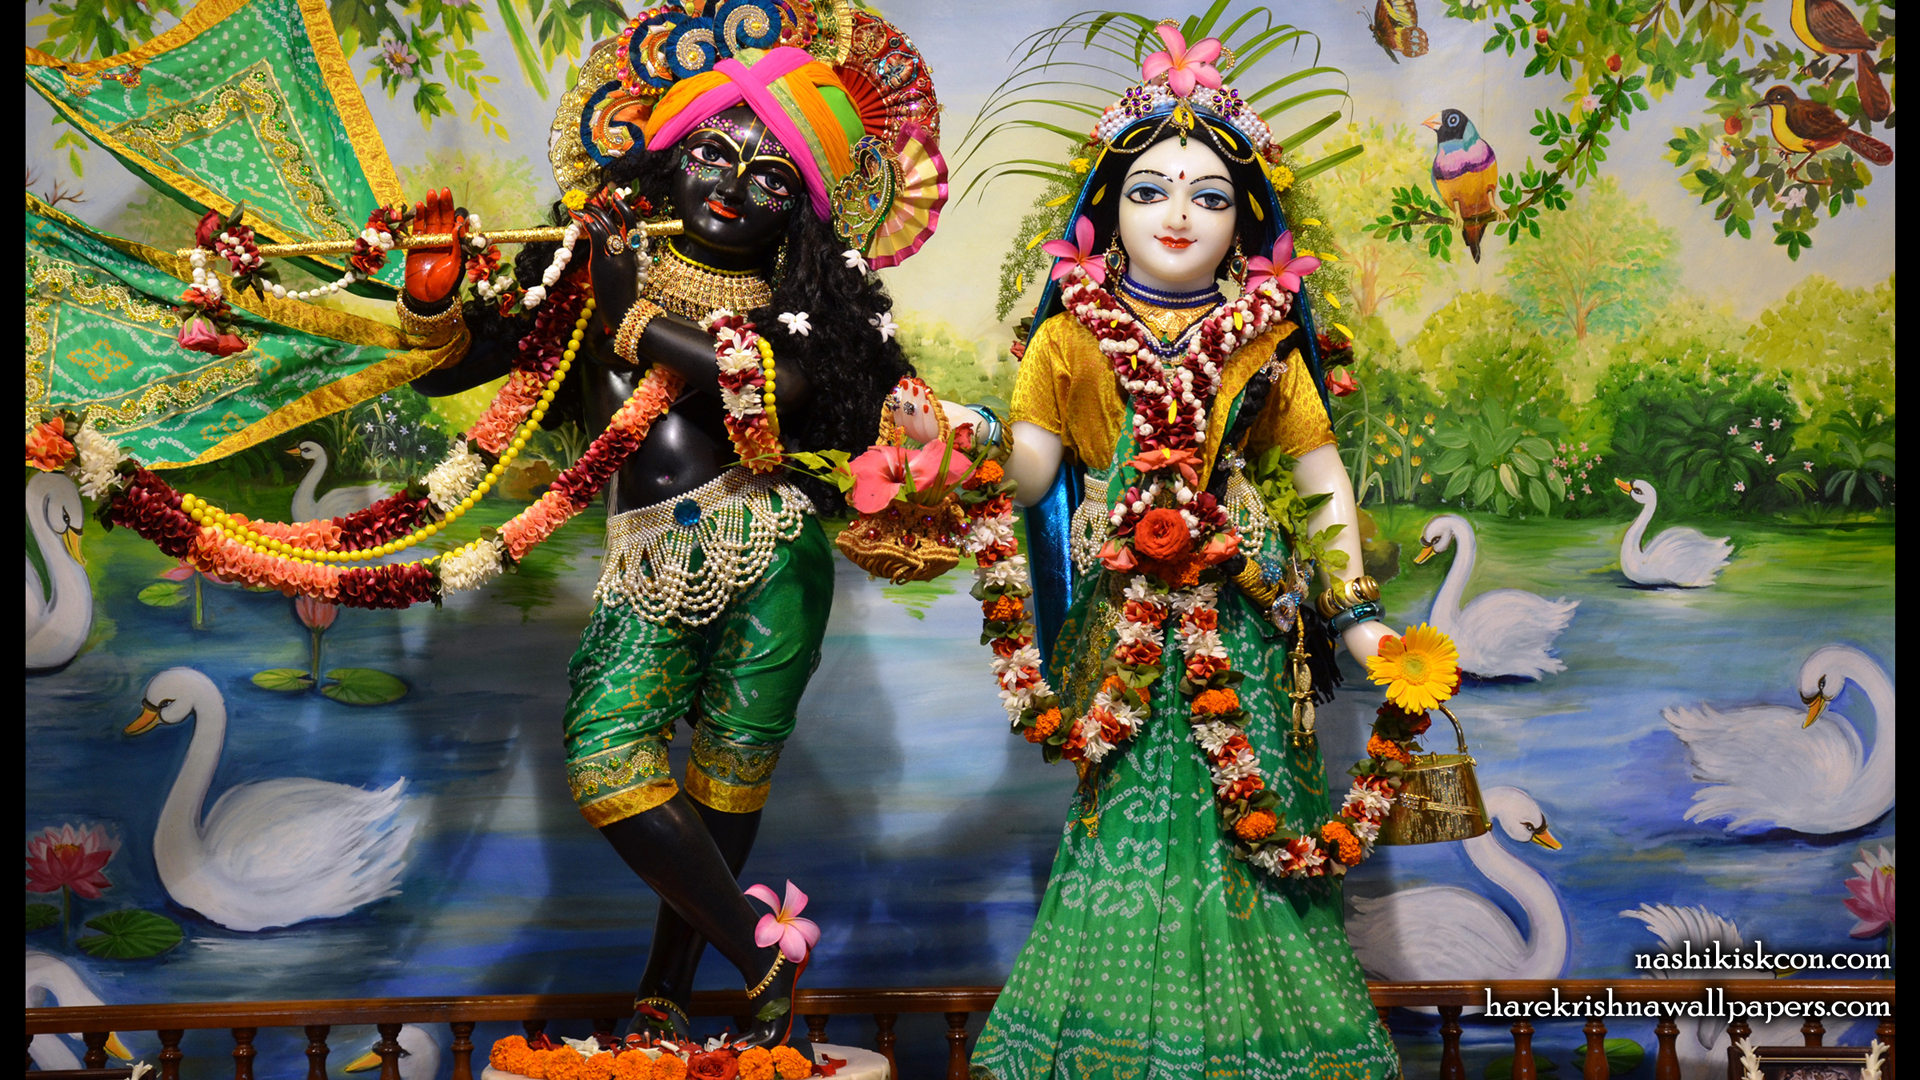 Sri Sri Radha Madan Gopal Wallpaper (006) Size 1920x1080 Download